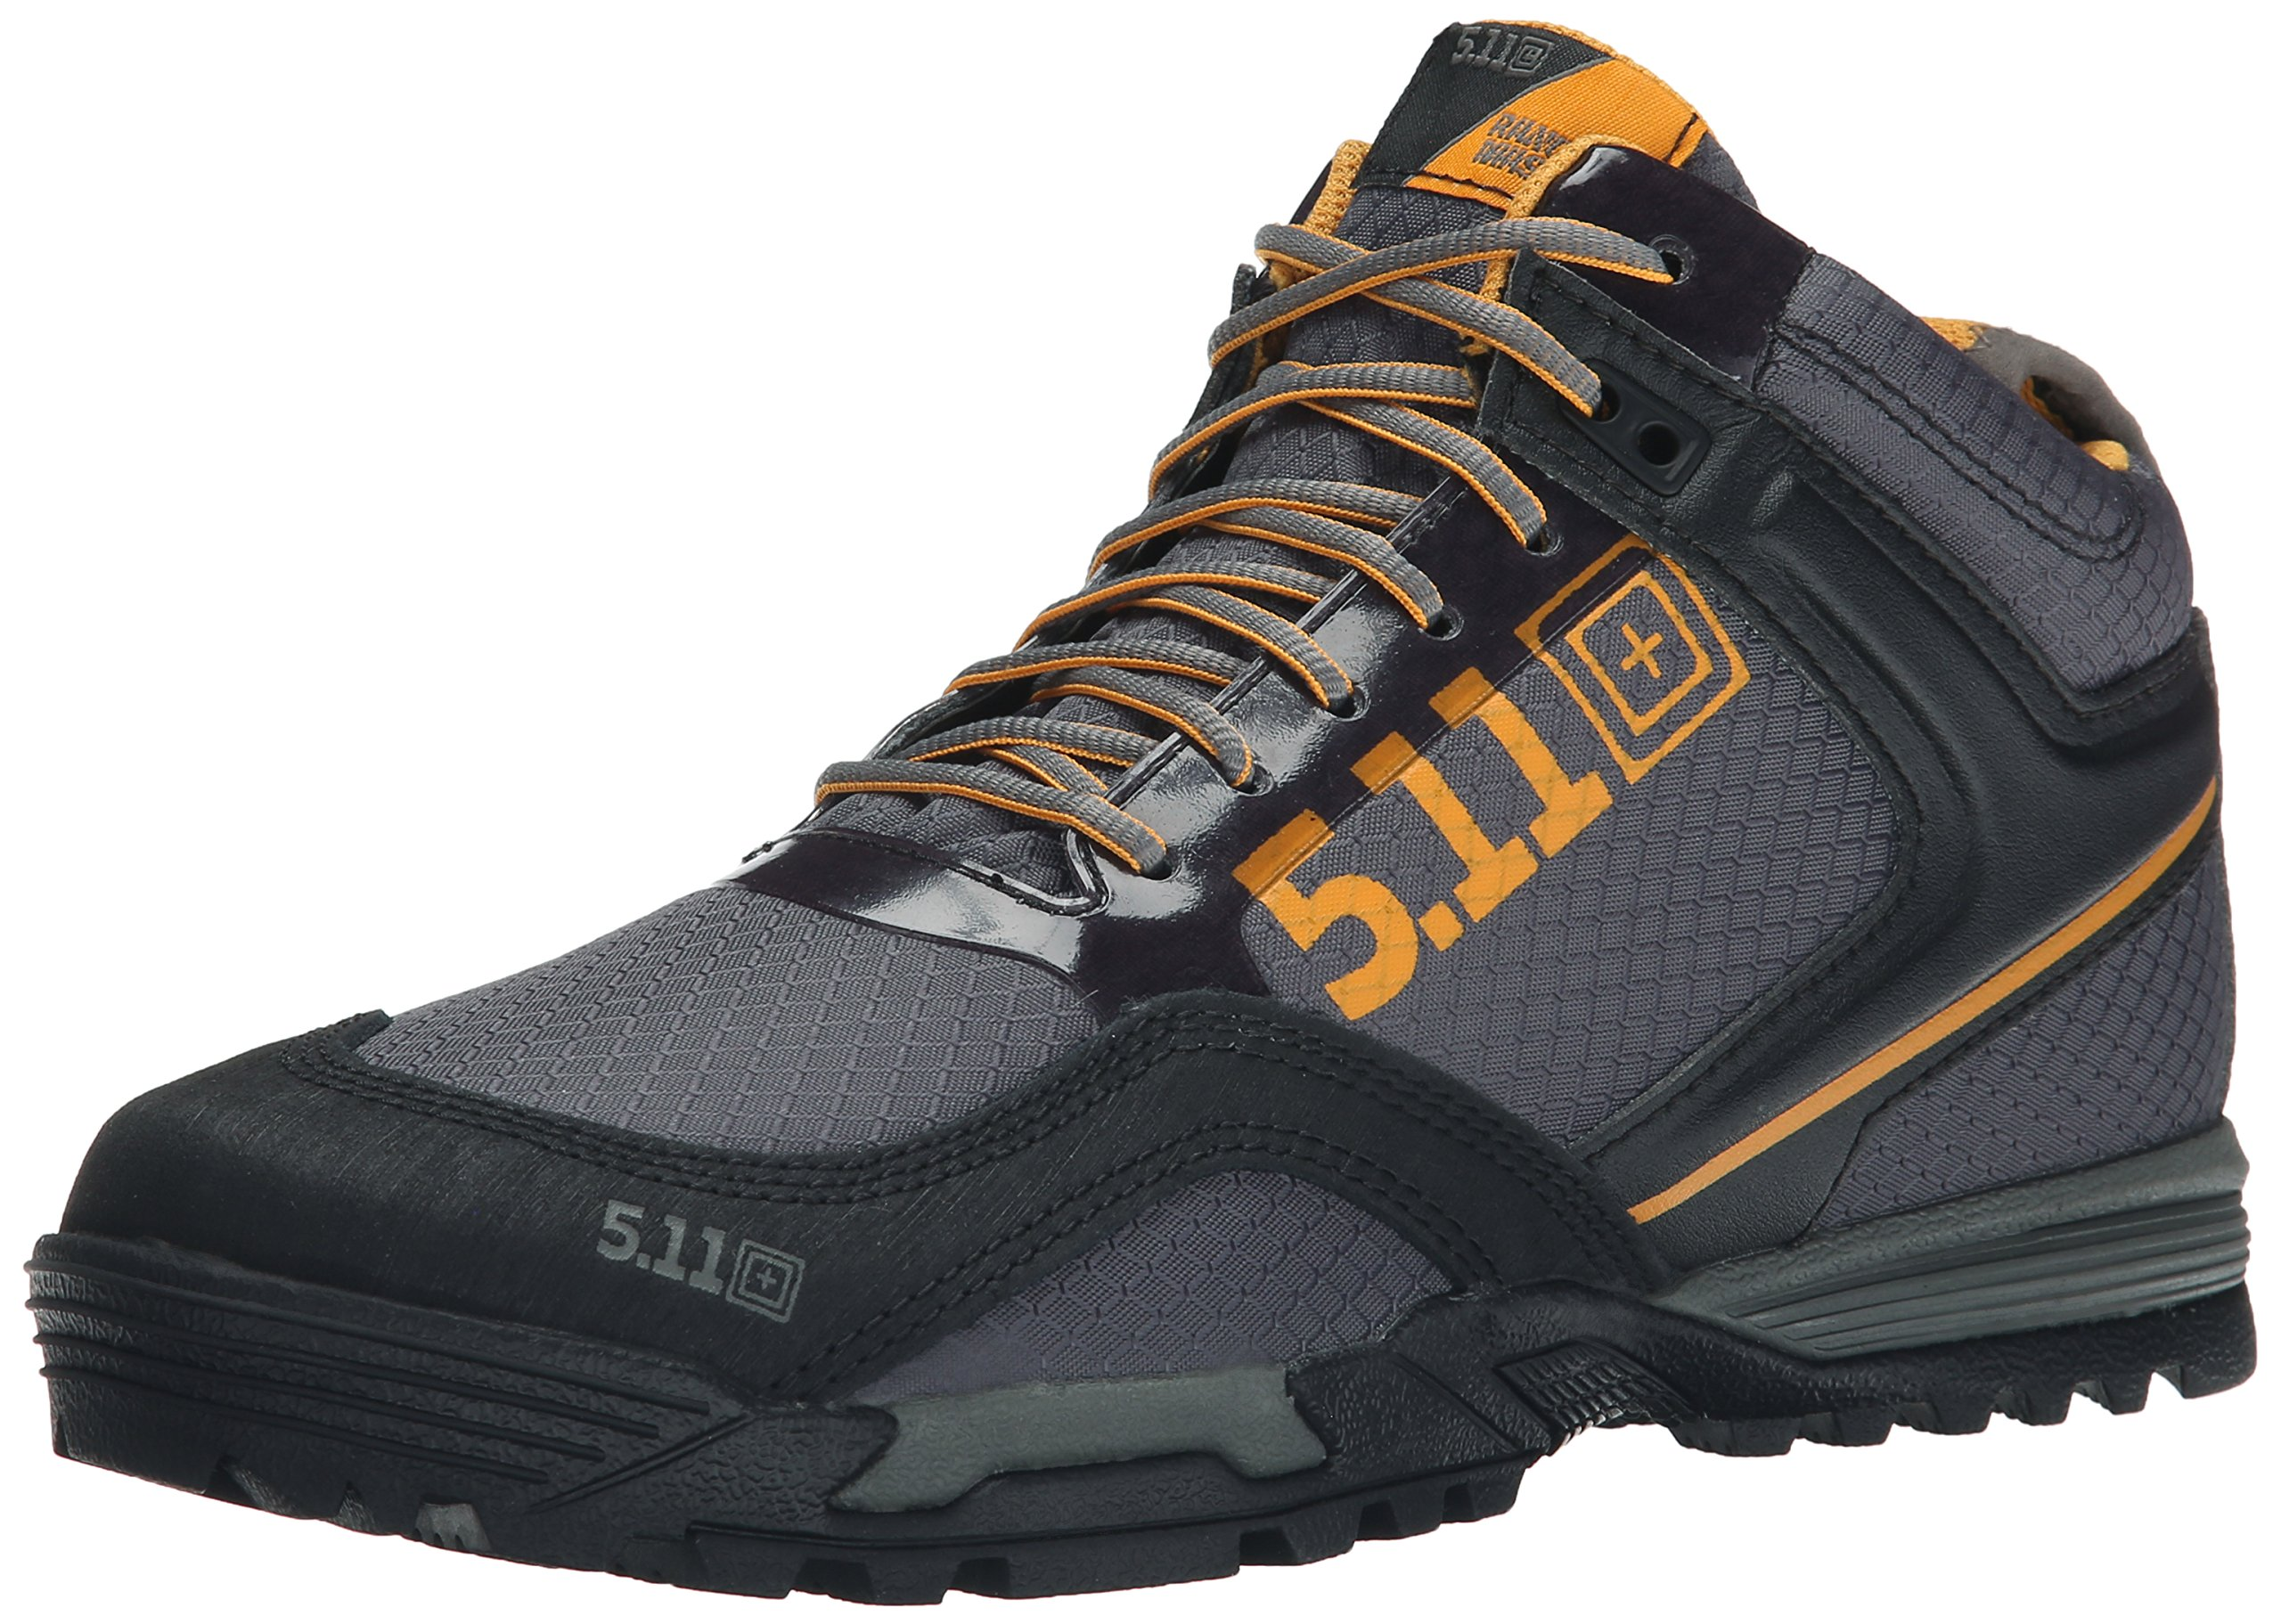 5.11 Tactical Men's Range Master G Work Shoe,Gun Smoke,5 D(M) US